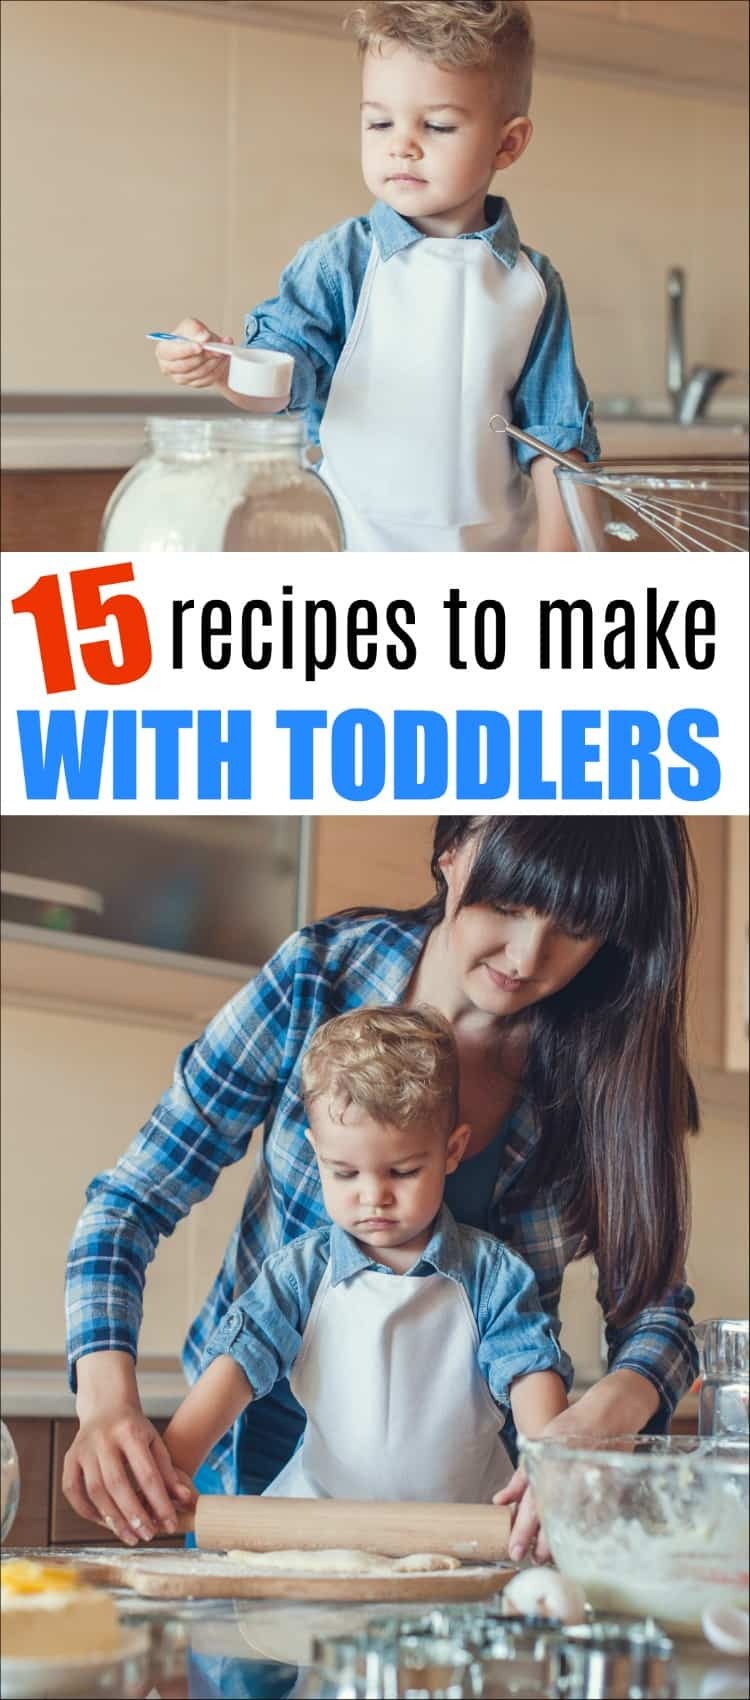 These 15 Amazing Recipes for Toddlers will help you bond with your kids while cooking. Cooking with toddlers is fun and educational. #toddlerrecipes #cookingwithkids